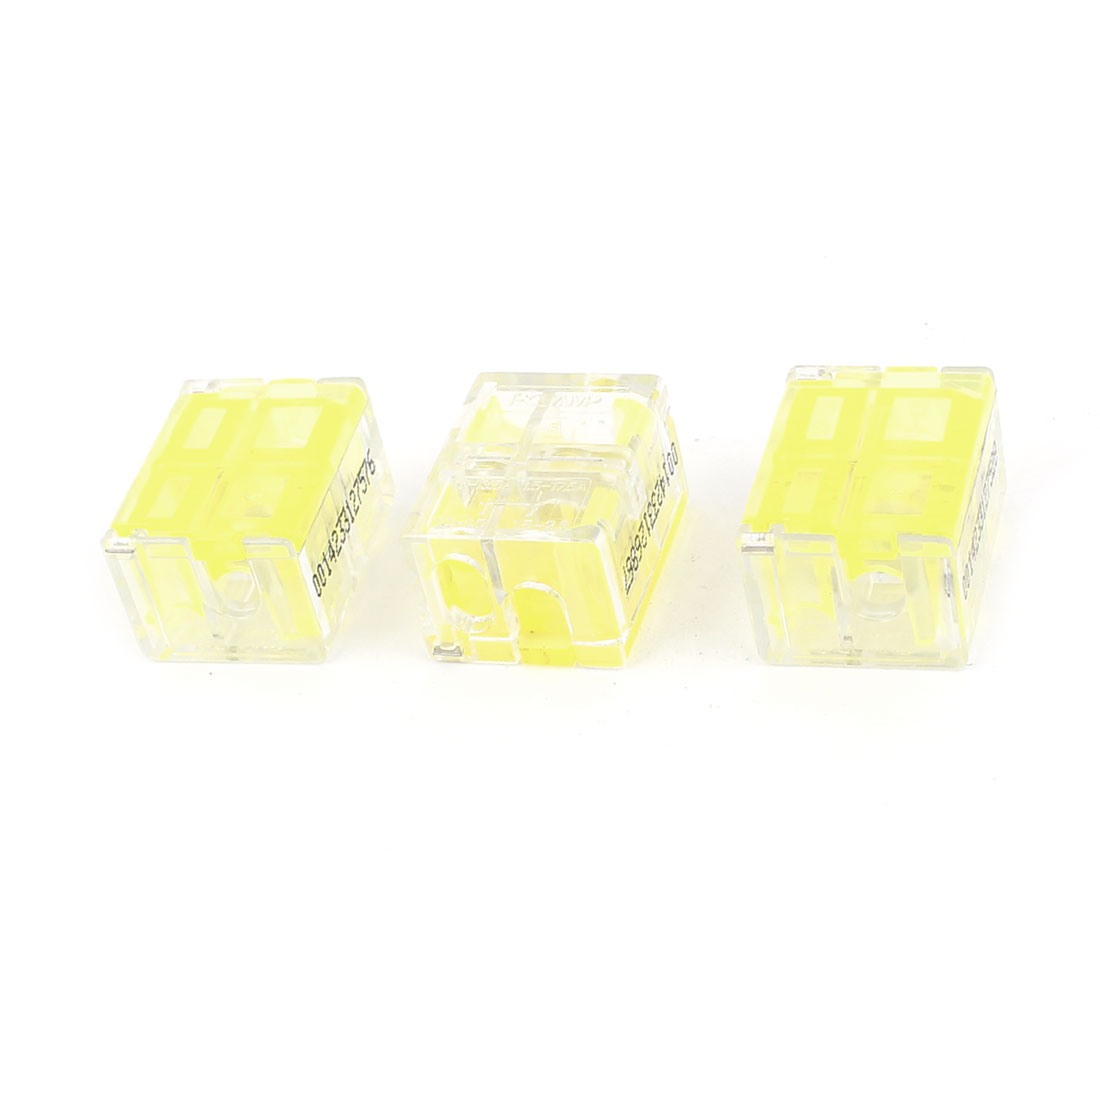 3 Pcs 1.0-1.5mm2 1.5-2.5mm2 I-Clamp Wire Cable Connector Case Yelllow Clear